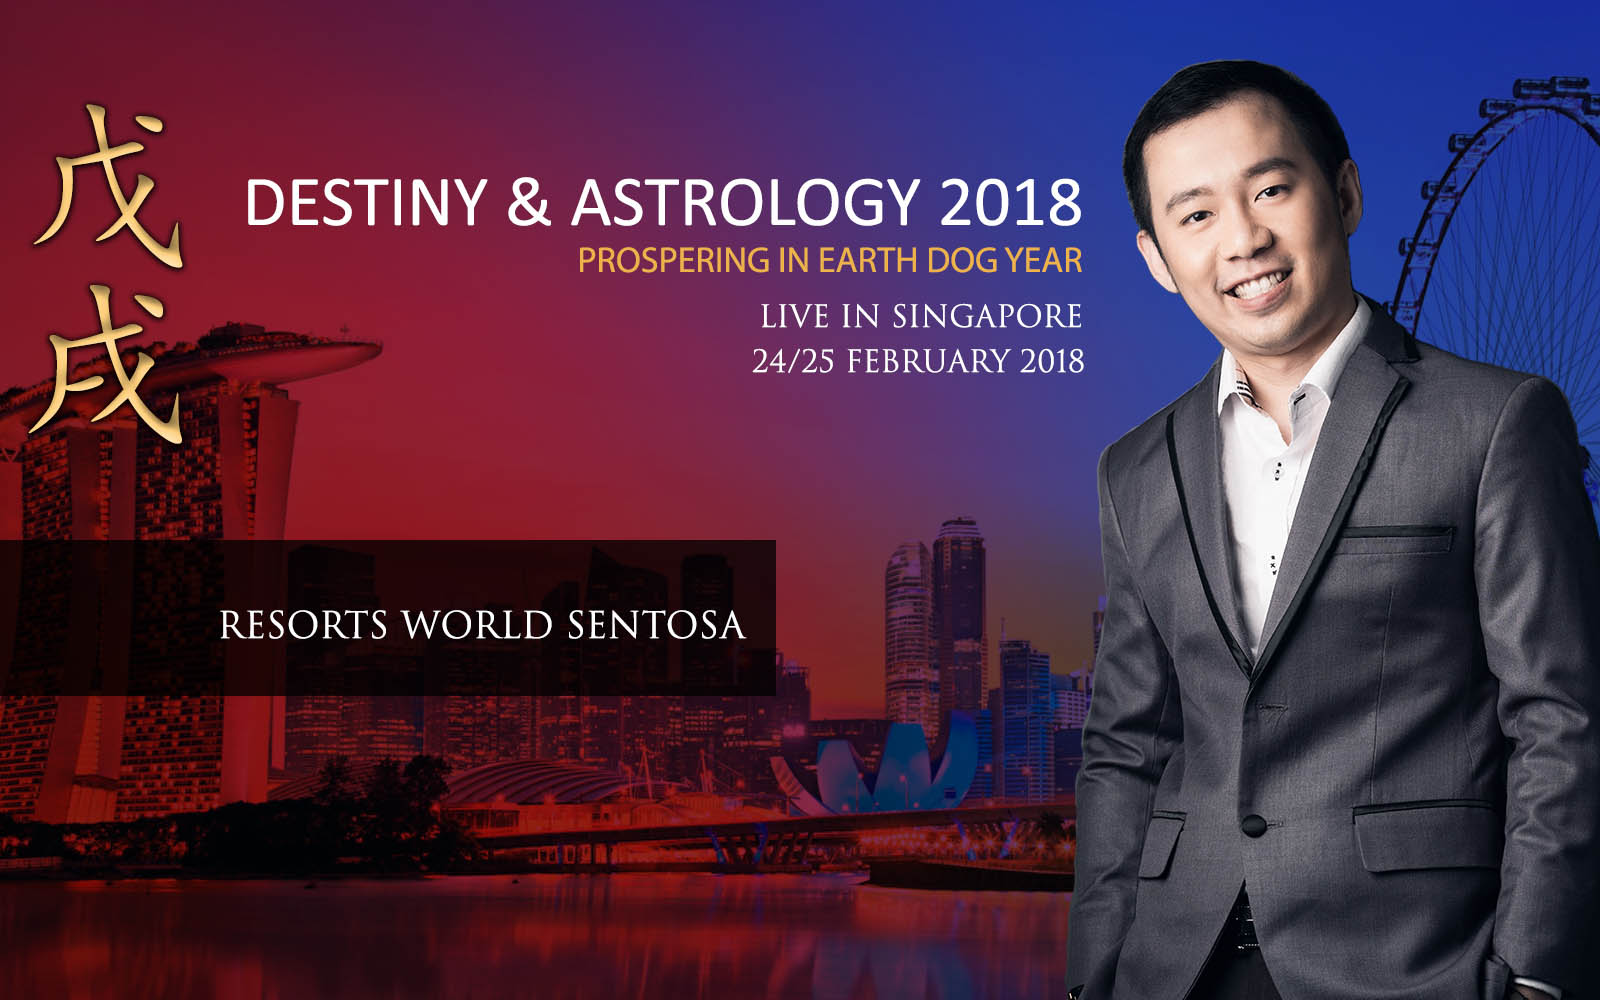 Destiny & Astrology 2018 Singapore